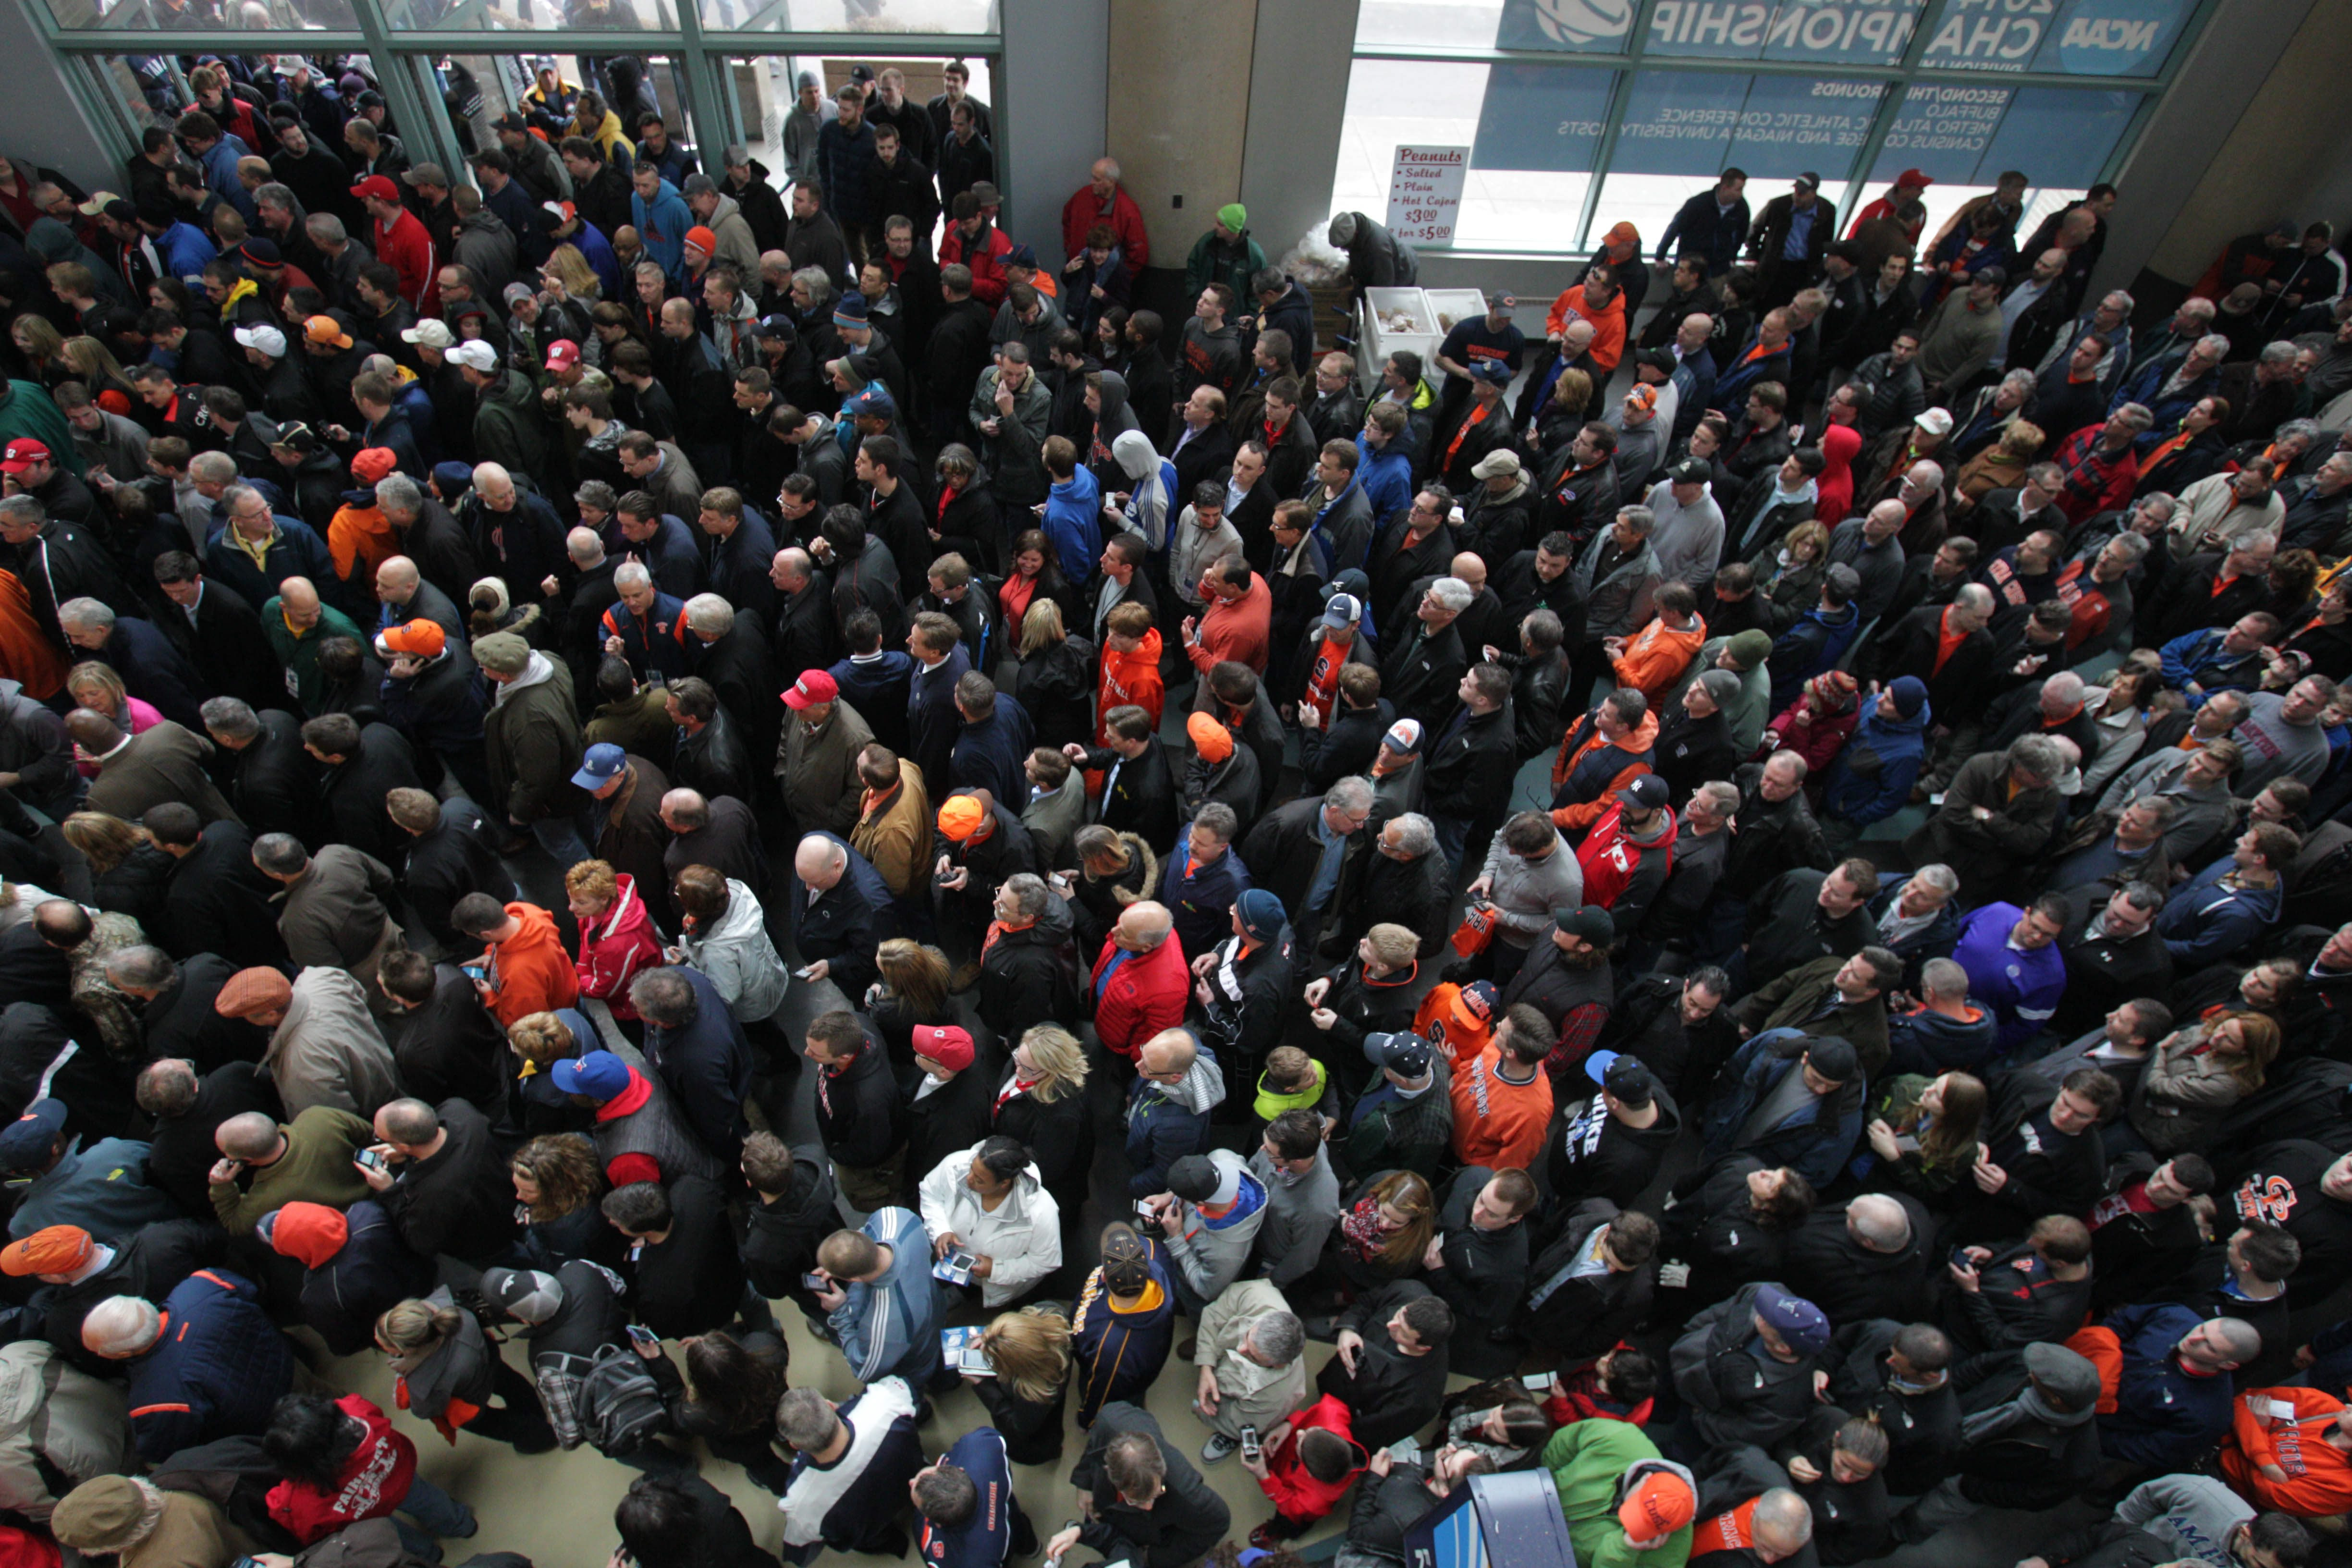 Fans jam into the lobby of KeyBank Arena, which was then known as First Niagara Center, for the NCAA tournament in 2014.  (Sharon Cantillon/Buffalo News)